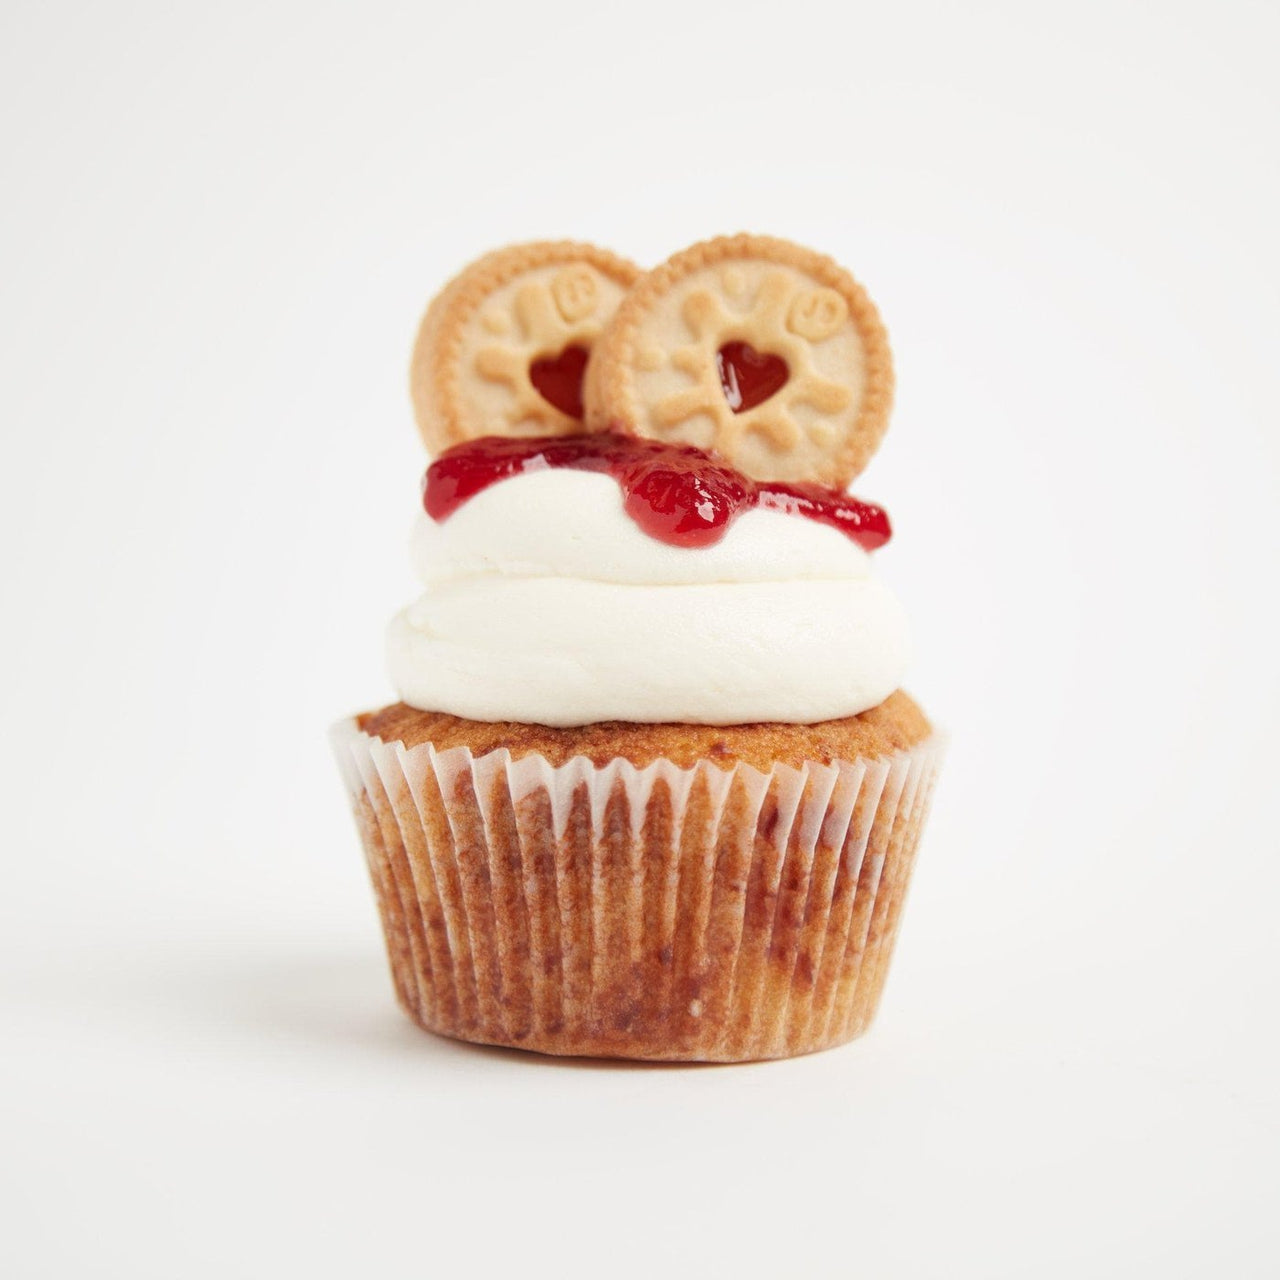 Jammy Dodger Cupcakes by Crumbs & Doilies